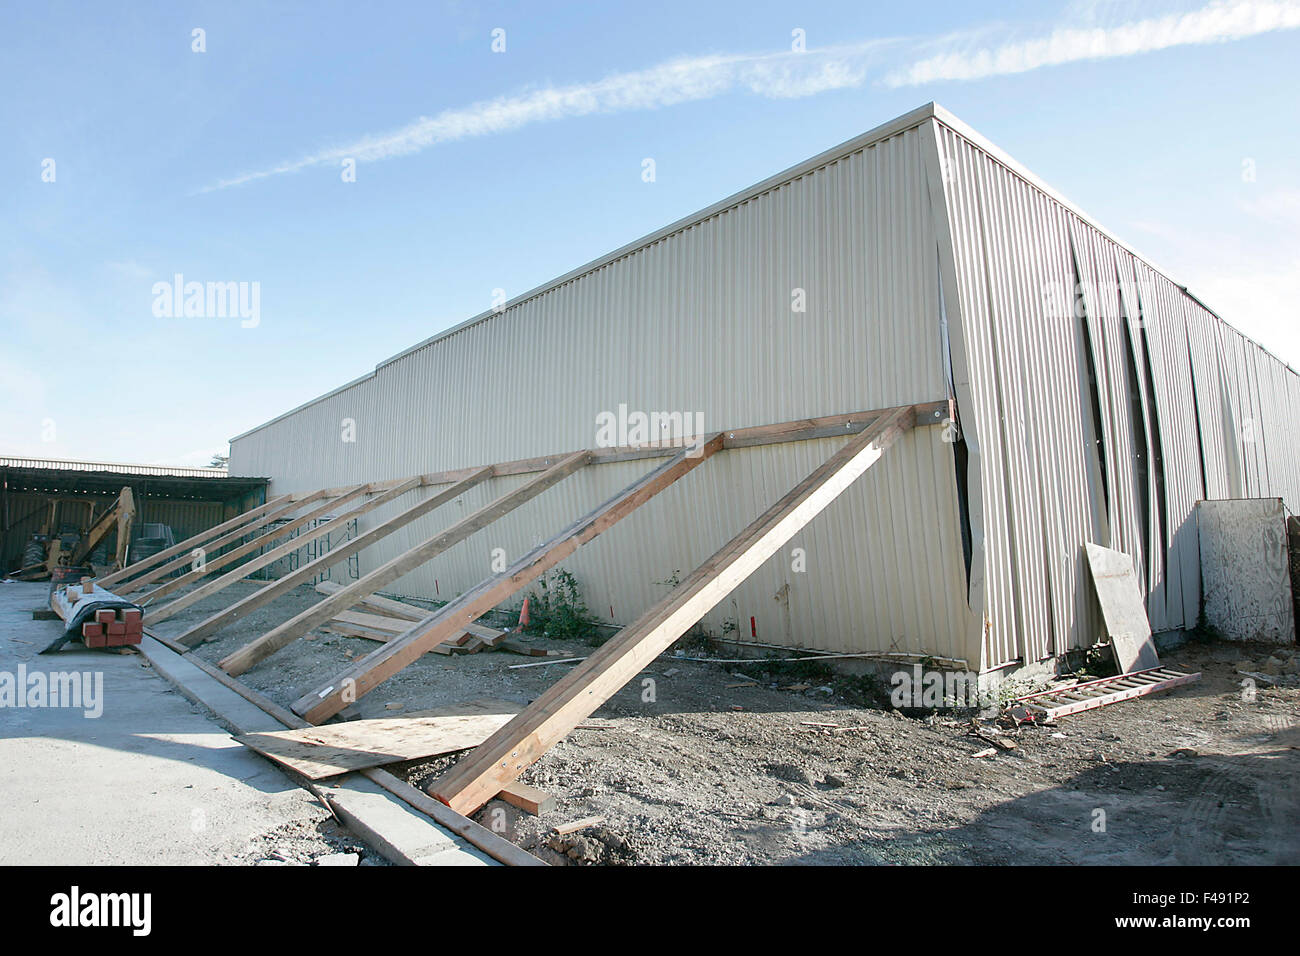 Napa, CA, USA. 8th Oct, 2015. Work On Shoring Up A Building Damaged In The  Aug. 2014 Earthquake Has Begun At Napa Self Storage. Renters Of Storage  Units ...